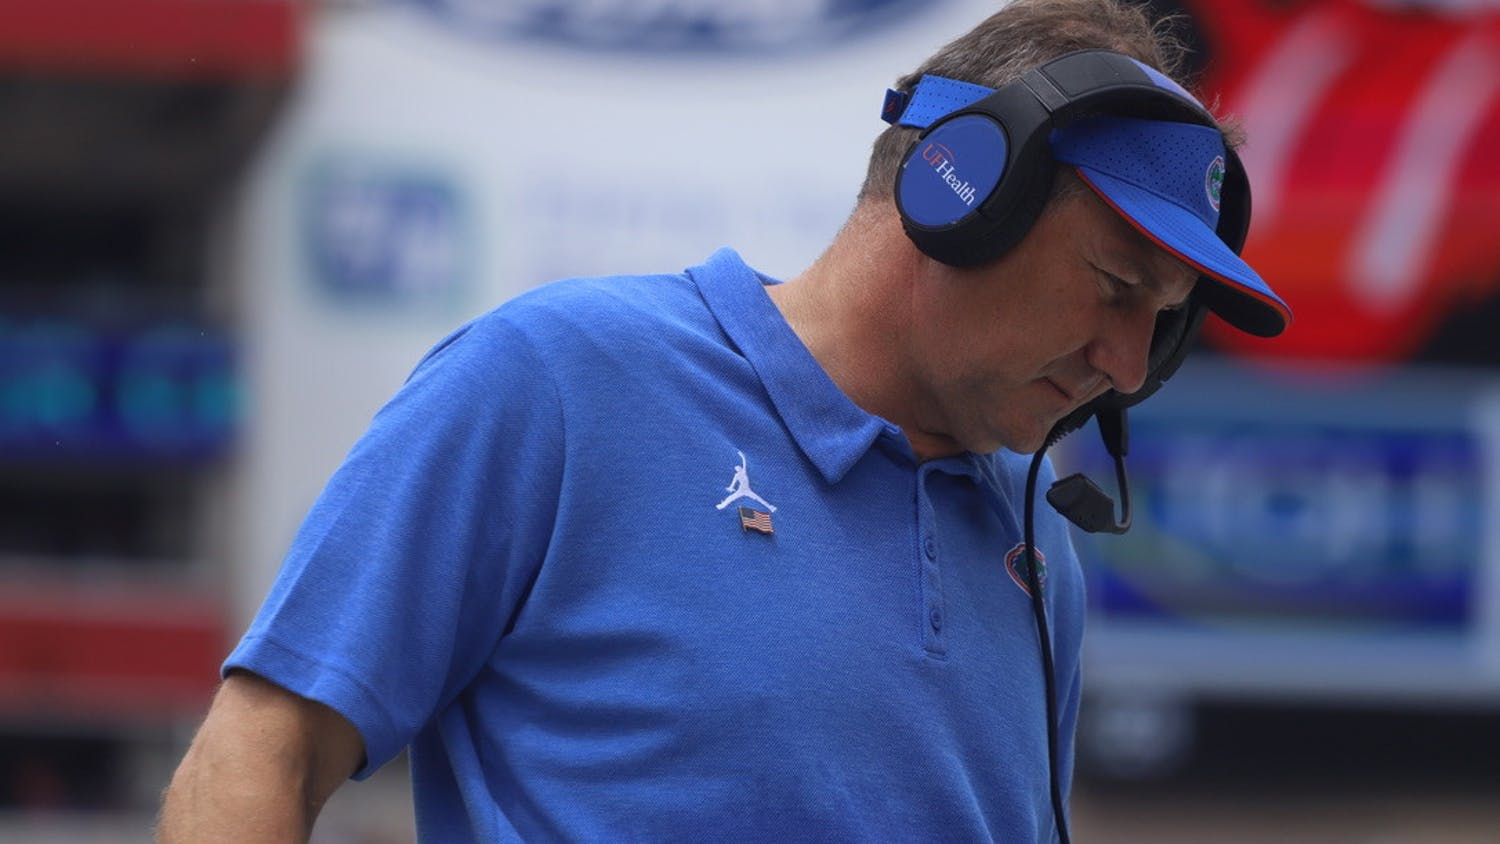 Florida head coach Dan Mullen during the Gators' game against South Florida on Sept. 11, 2021.